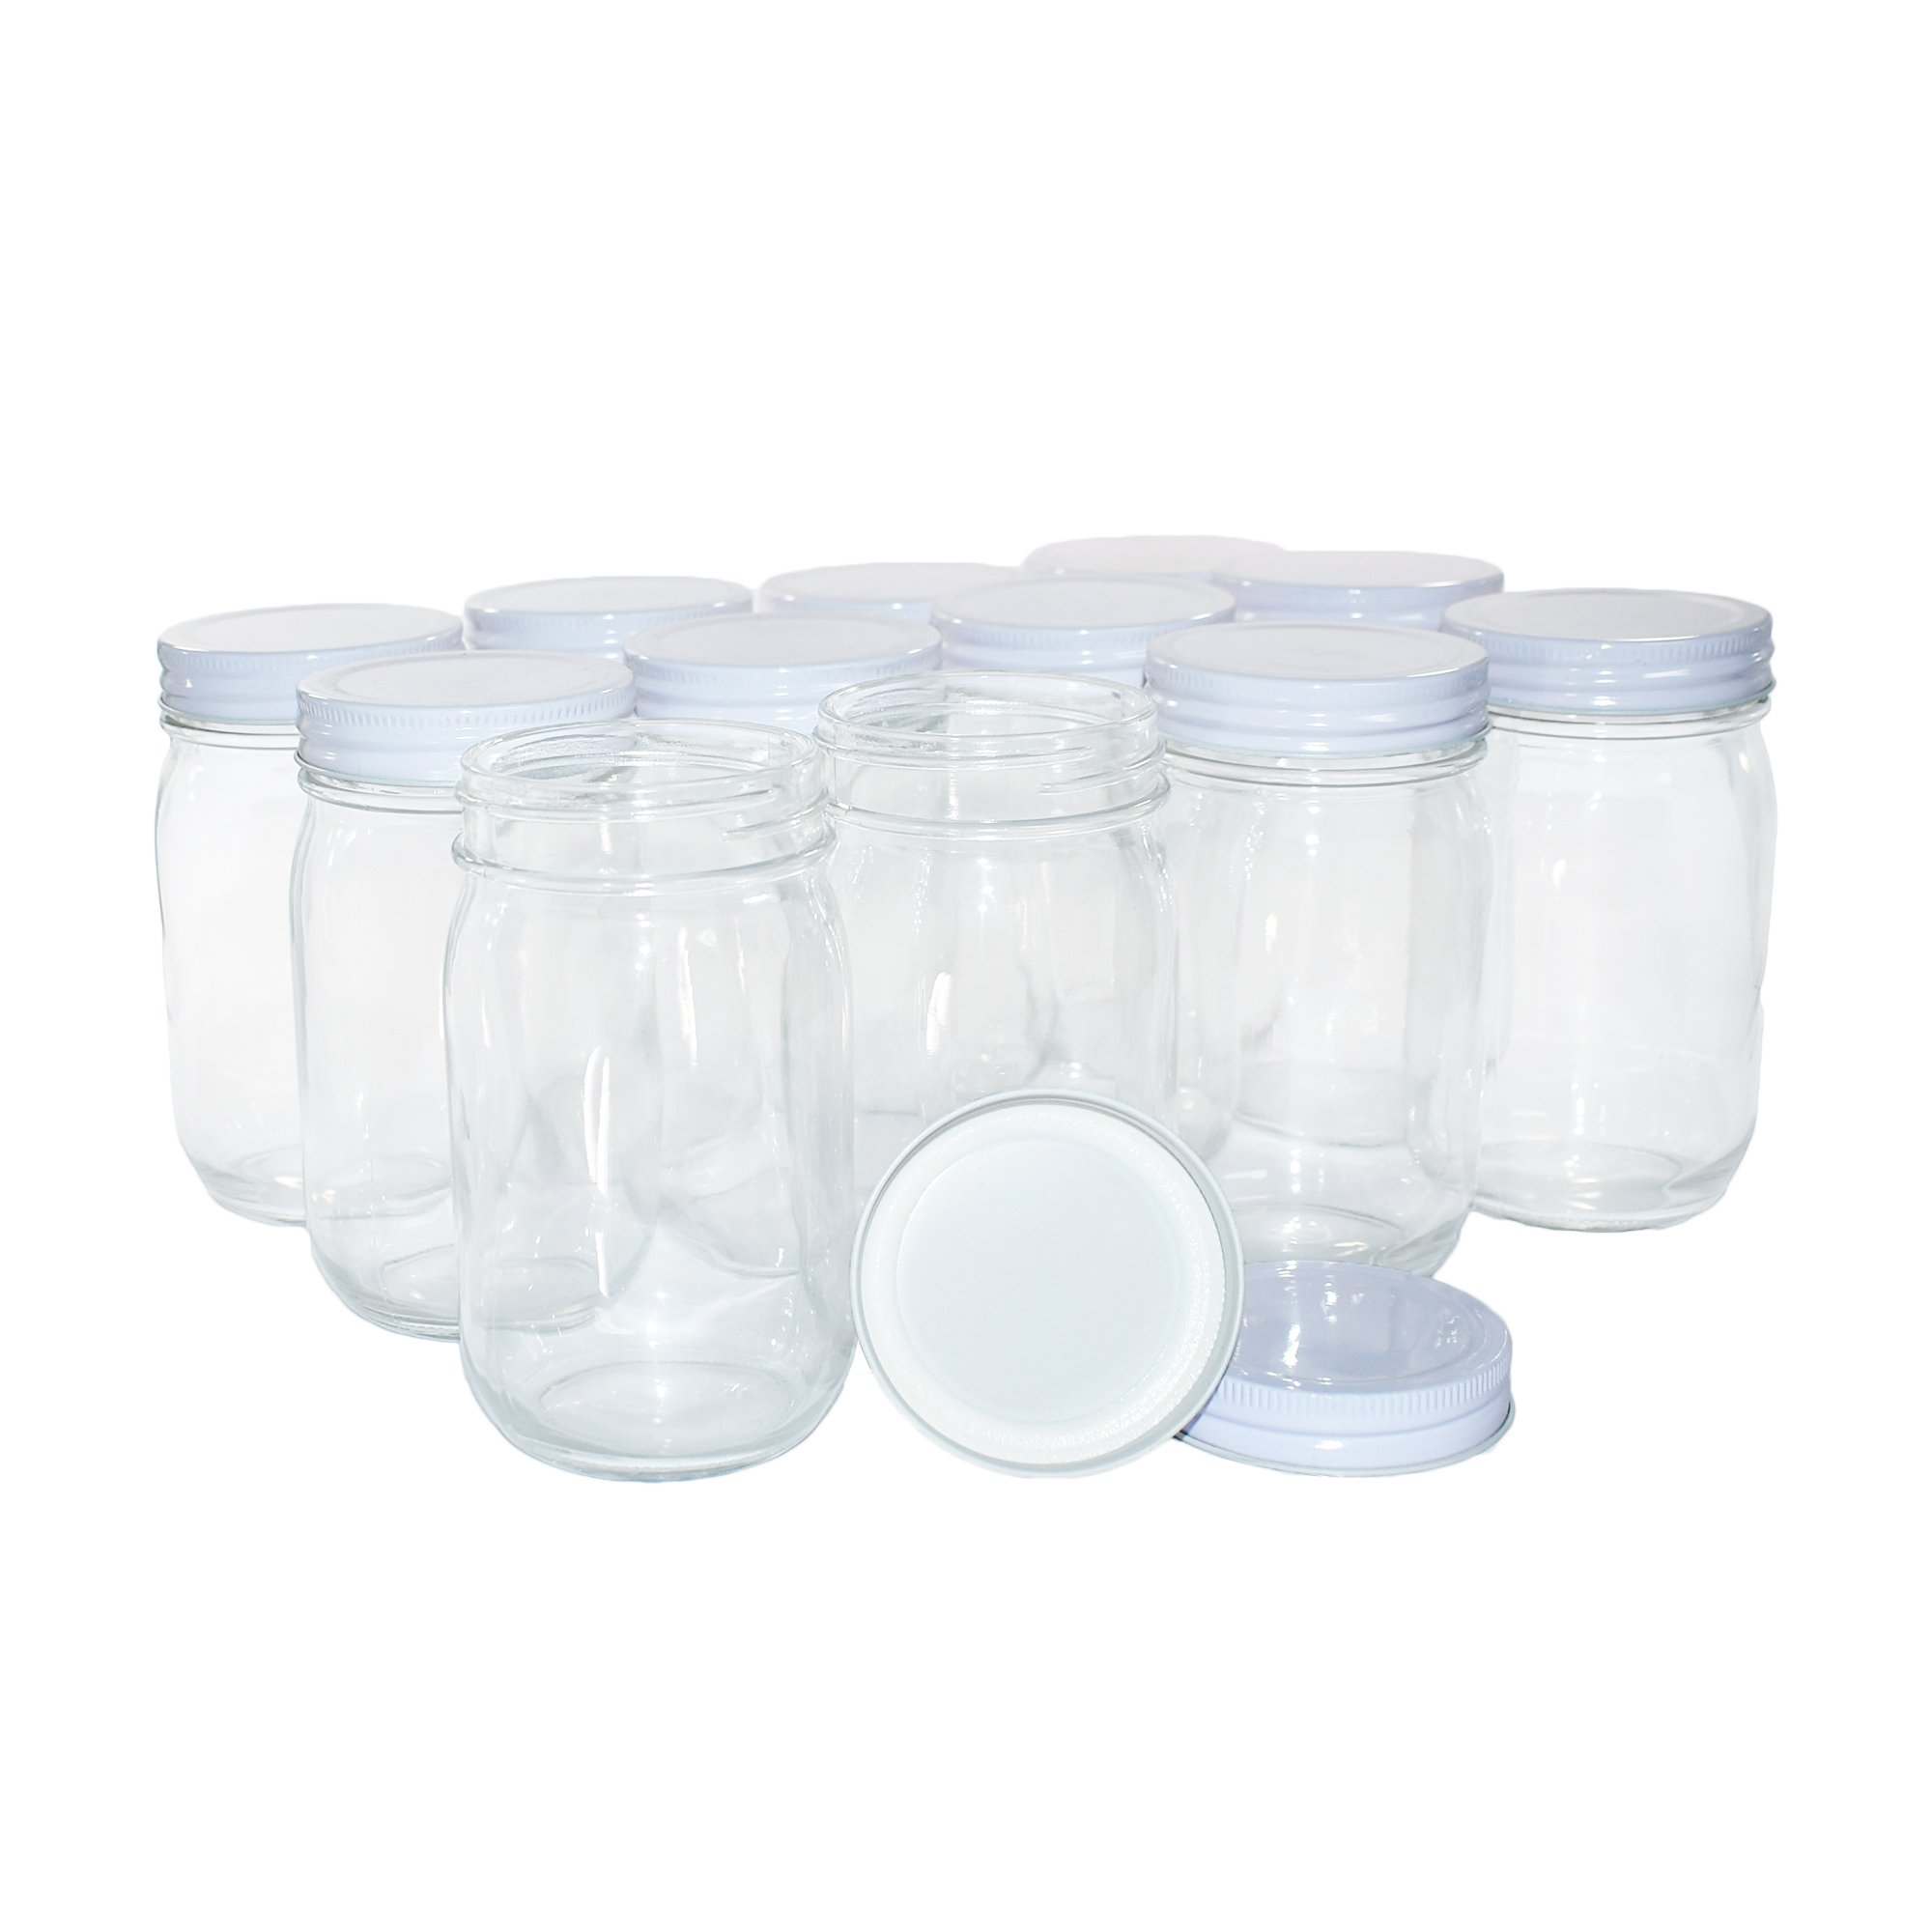 12 Pack Clear Glass Old-Fashioned Jars With Metal Lid (with seal) 16oz